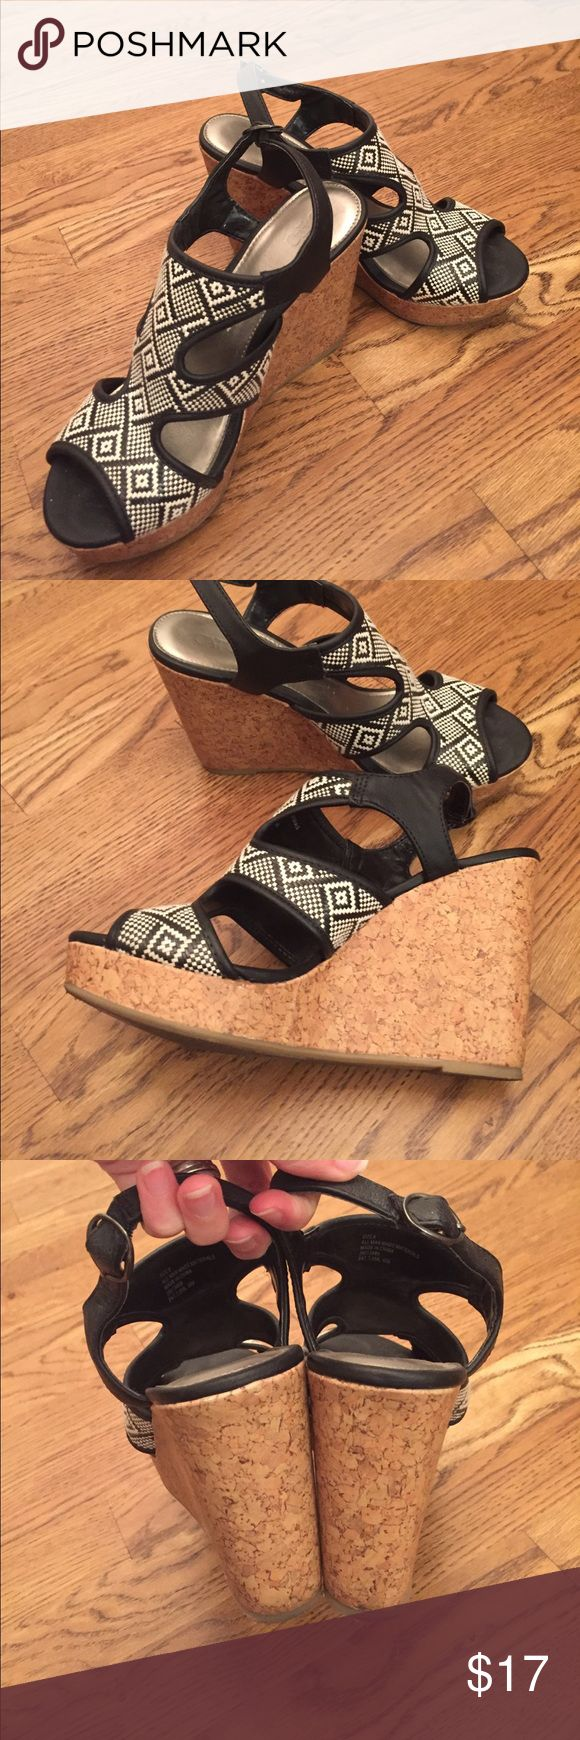 Cato Aztec Print Black & White Wedges Super cute Aztec Print black and white wedges from CATO.  Gently used but overall good condition.  Make me an offer!! Cato Shoes Wedges